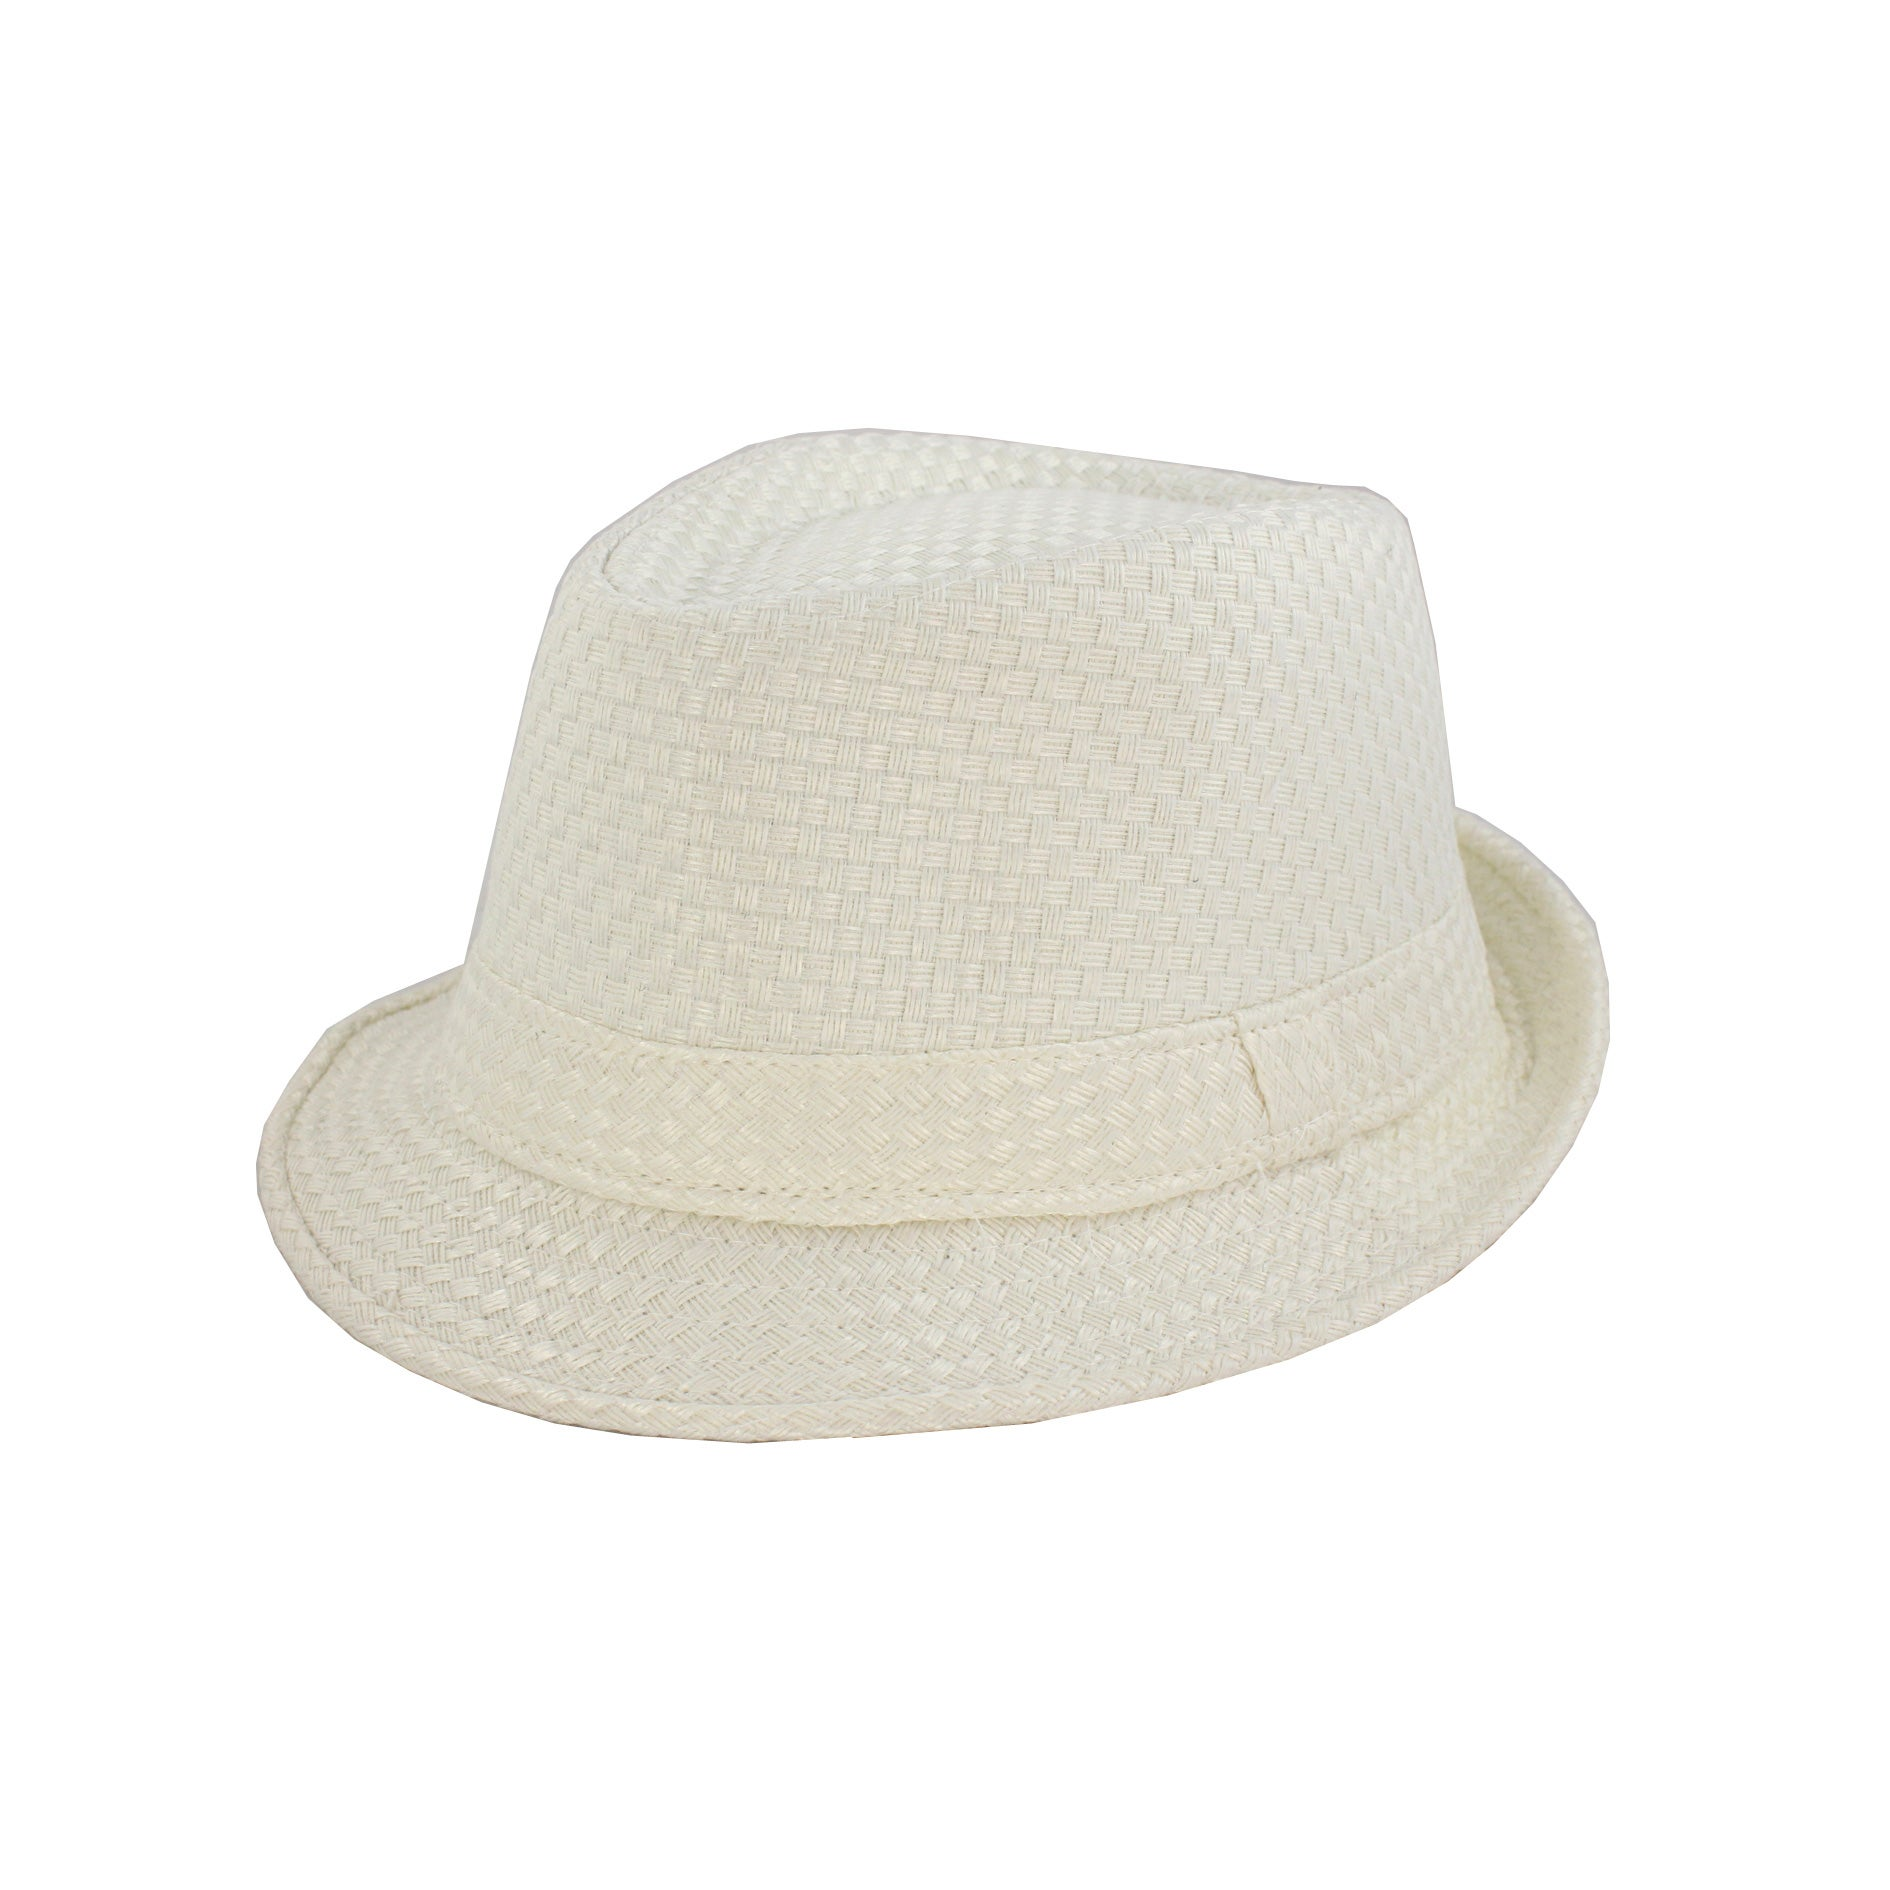 73e2207e9c2 Shop Faddism Men s Cream  White Woven Fedora Hat - Ships To Canada ...